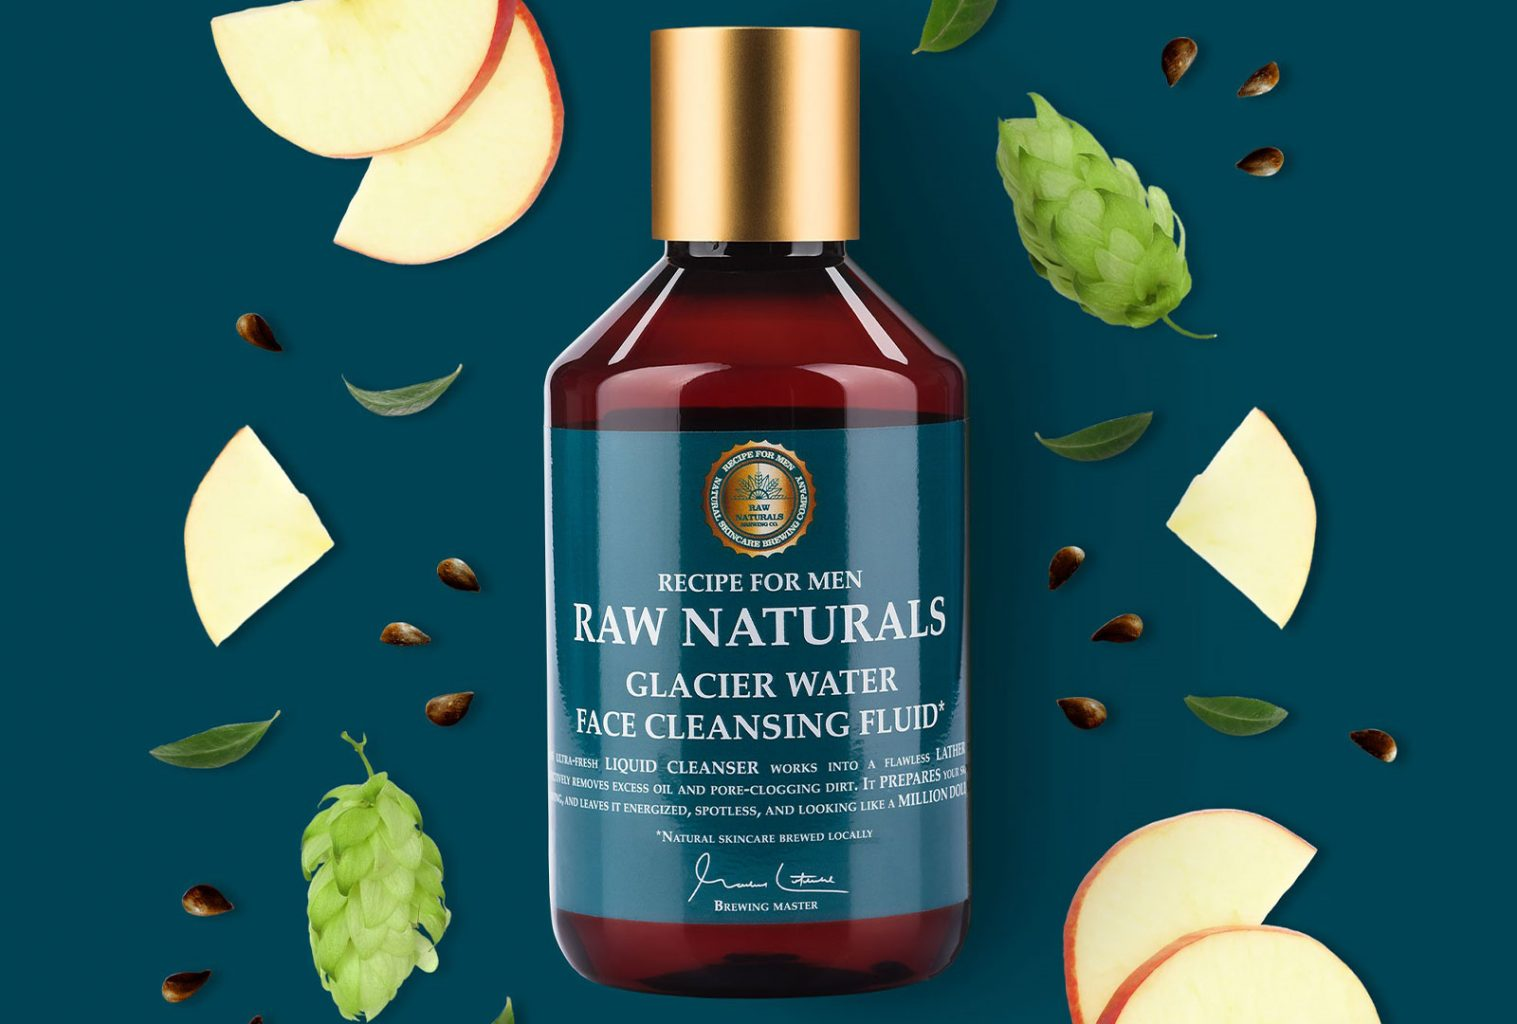 Raw Naturals Feature Image